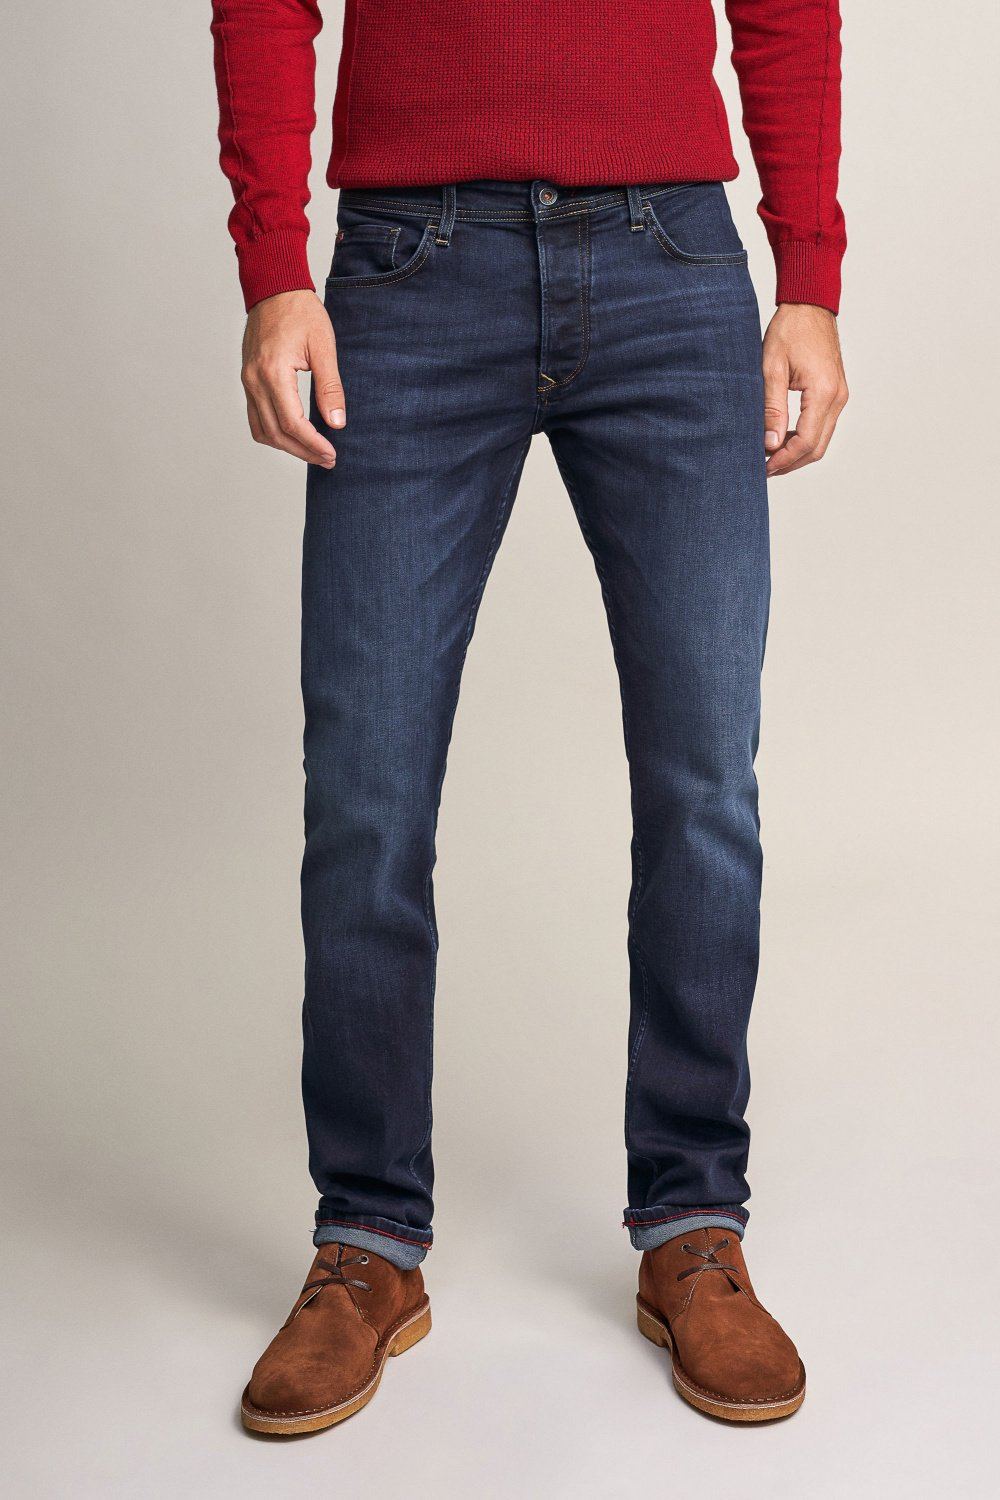 Lima tapered dark jeans - Salsa